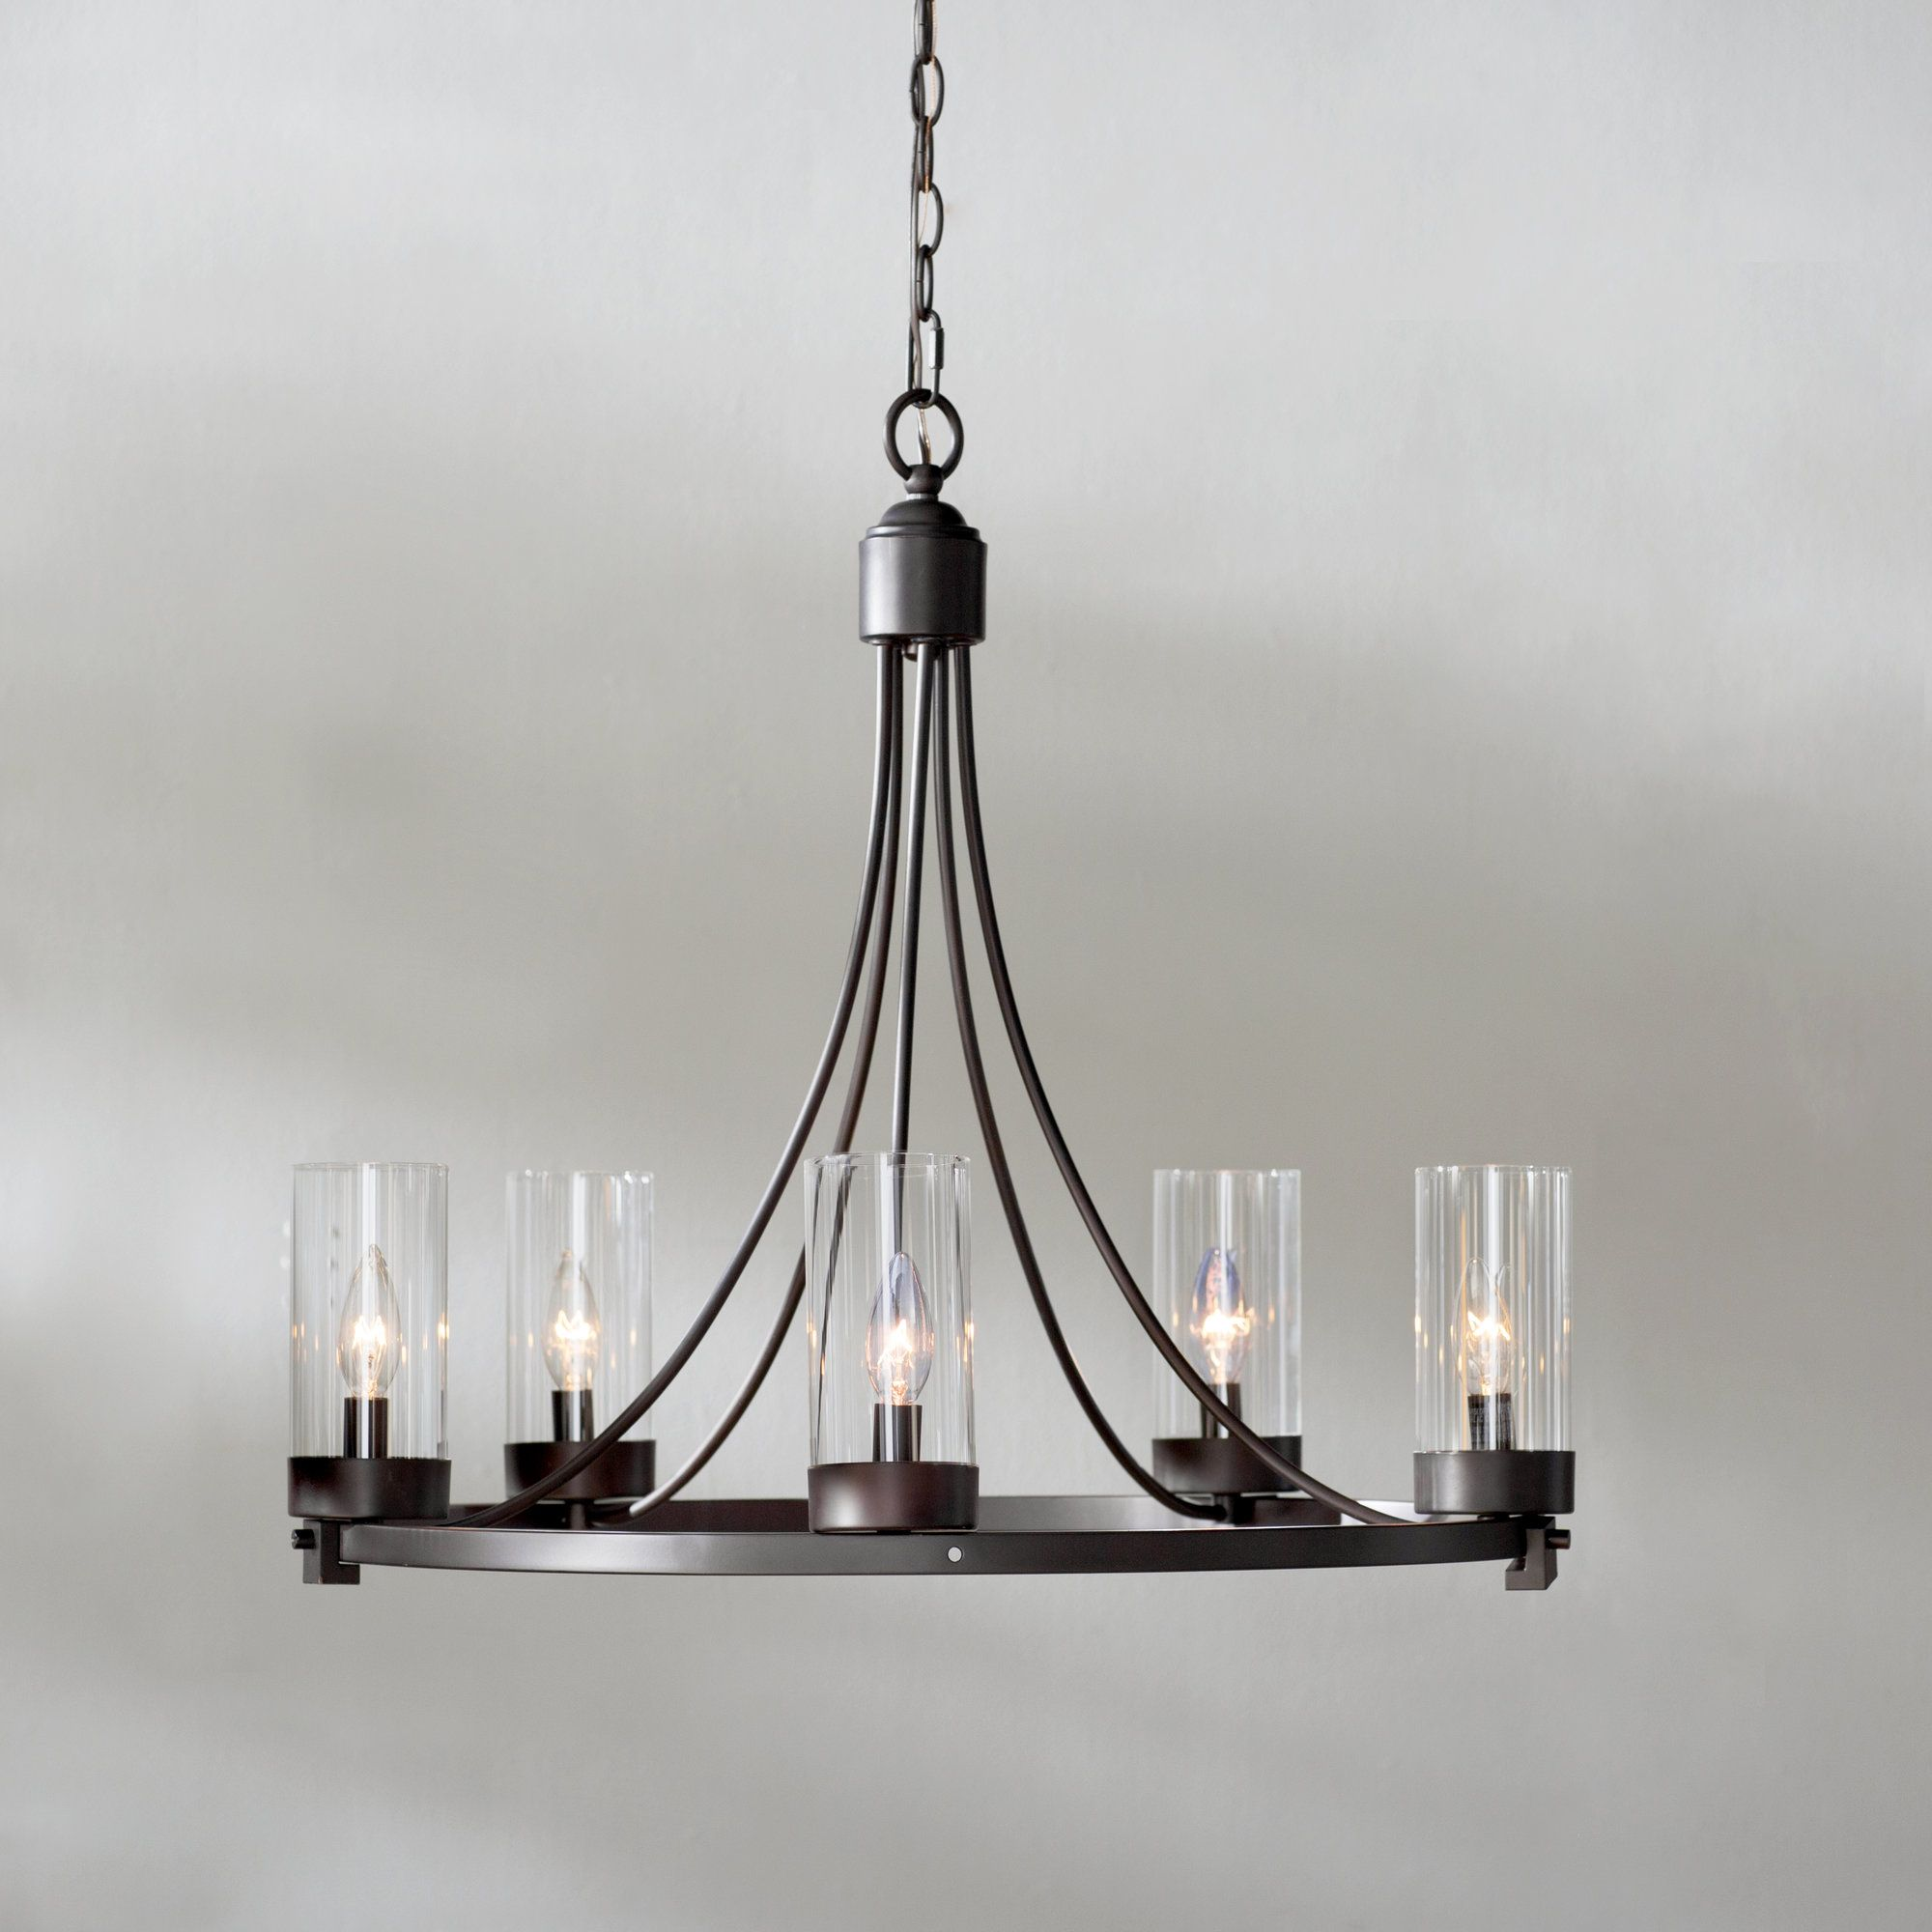 Levan 5 Light Candle Style Chandelier